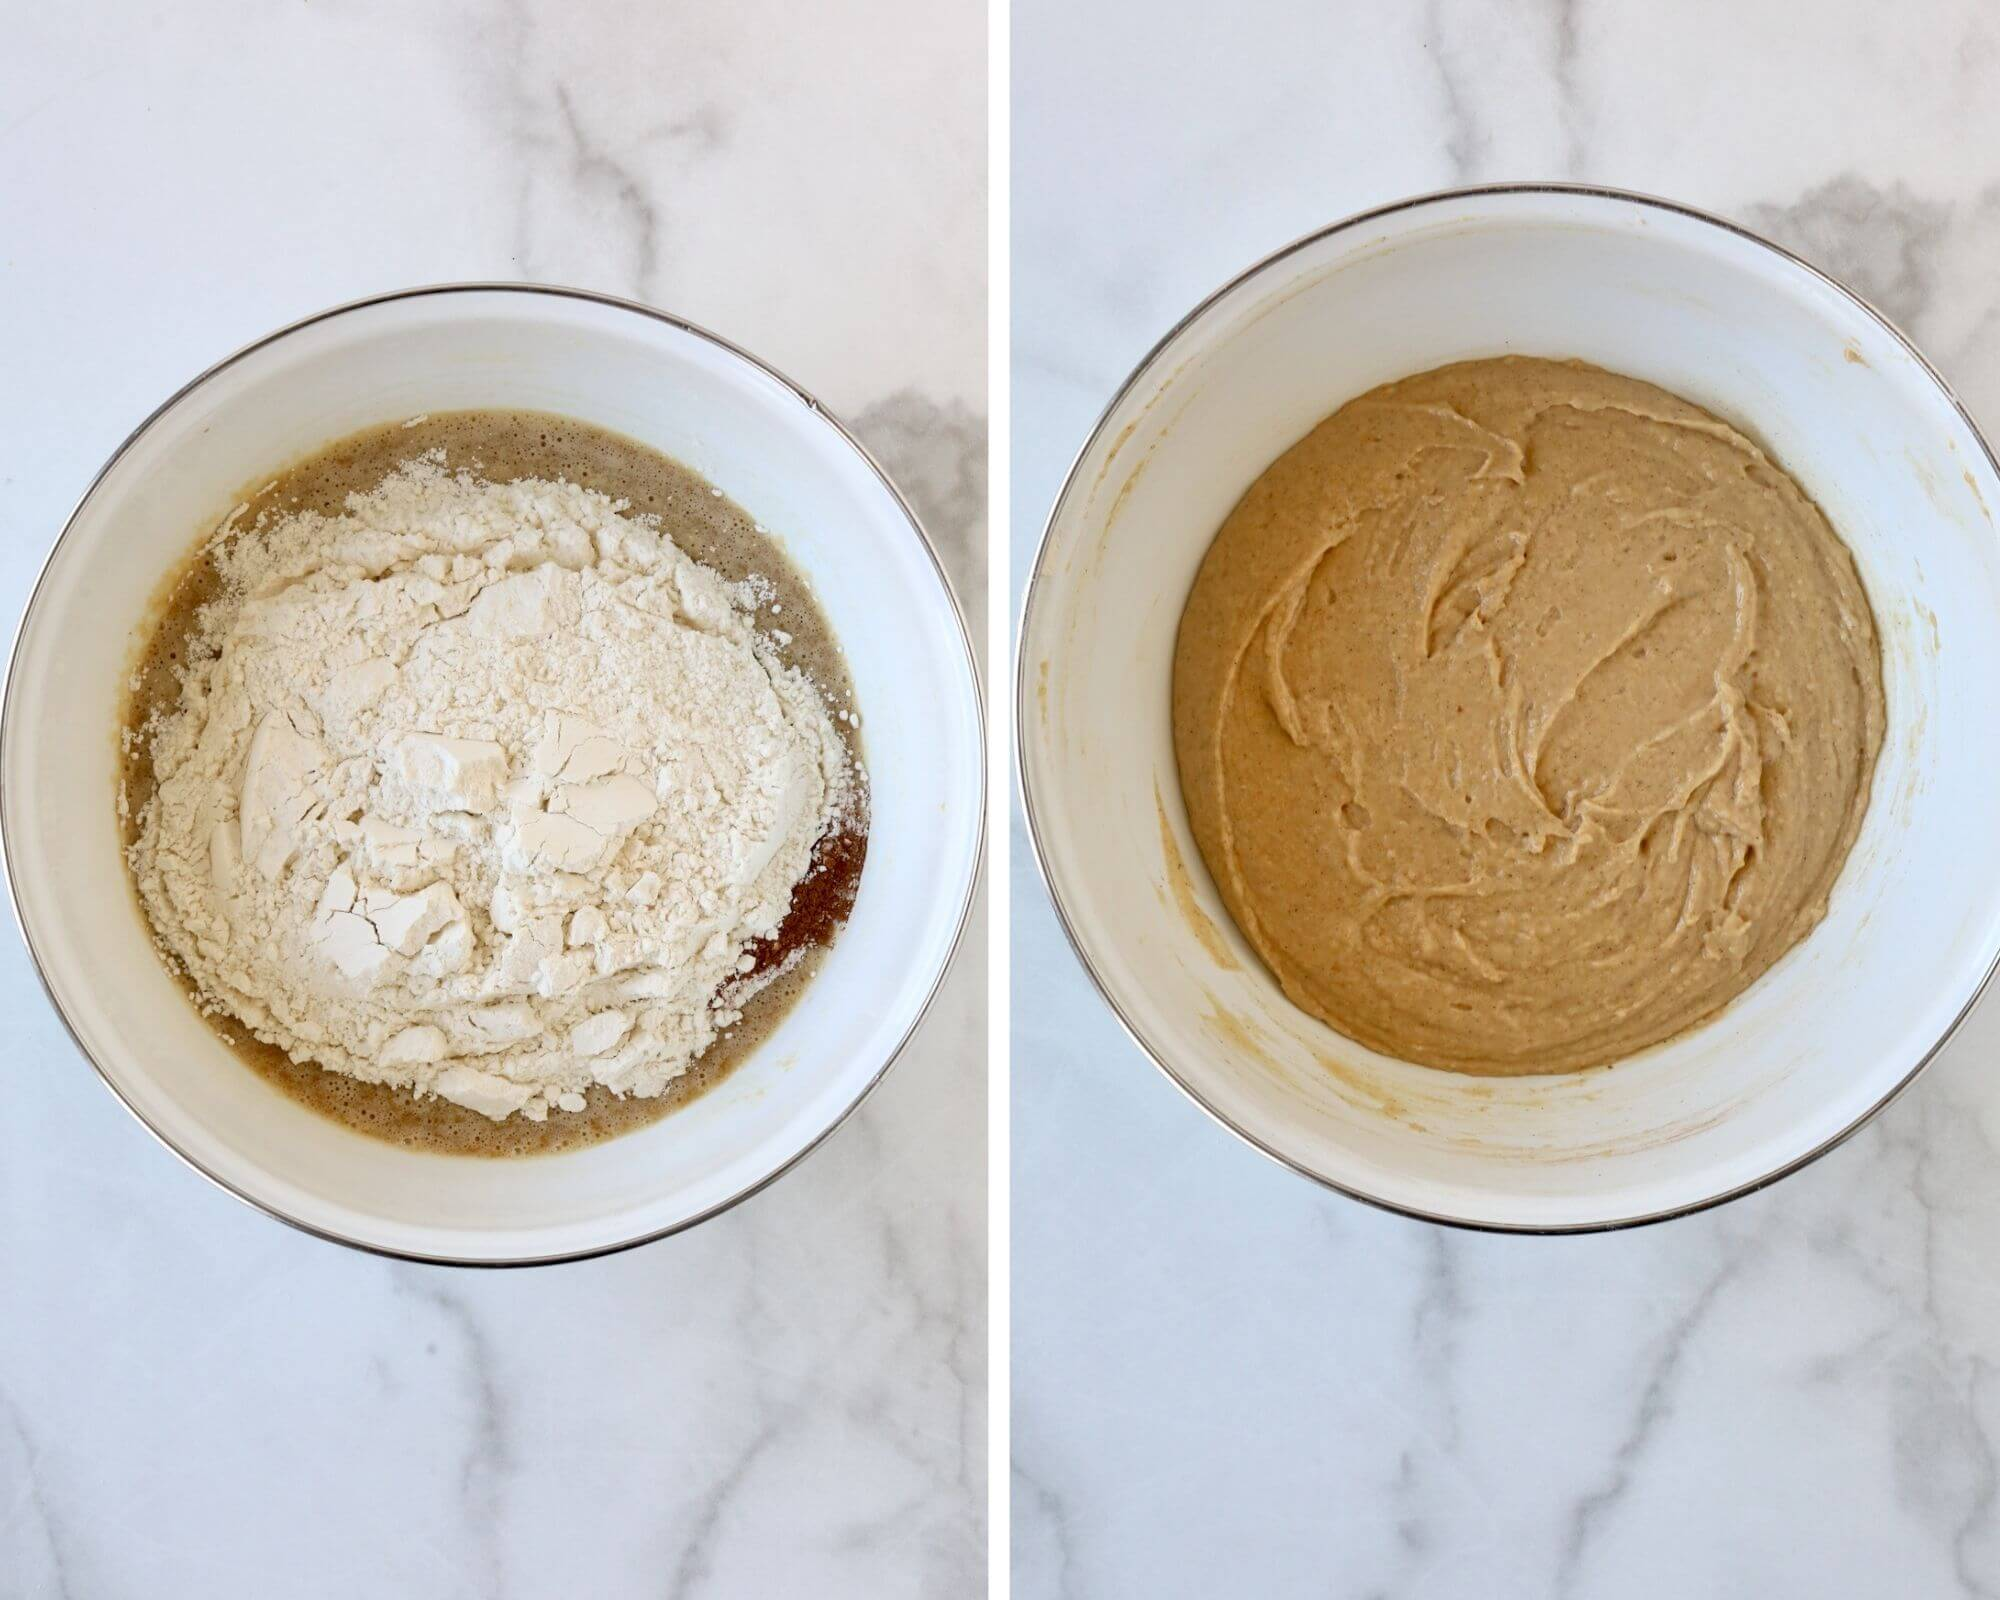 A bowl of wet ingredients with dry ingredients on top next to a bowl of apple spice cake batter completed.